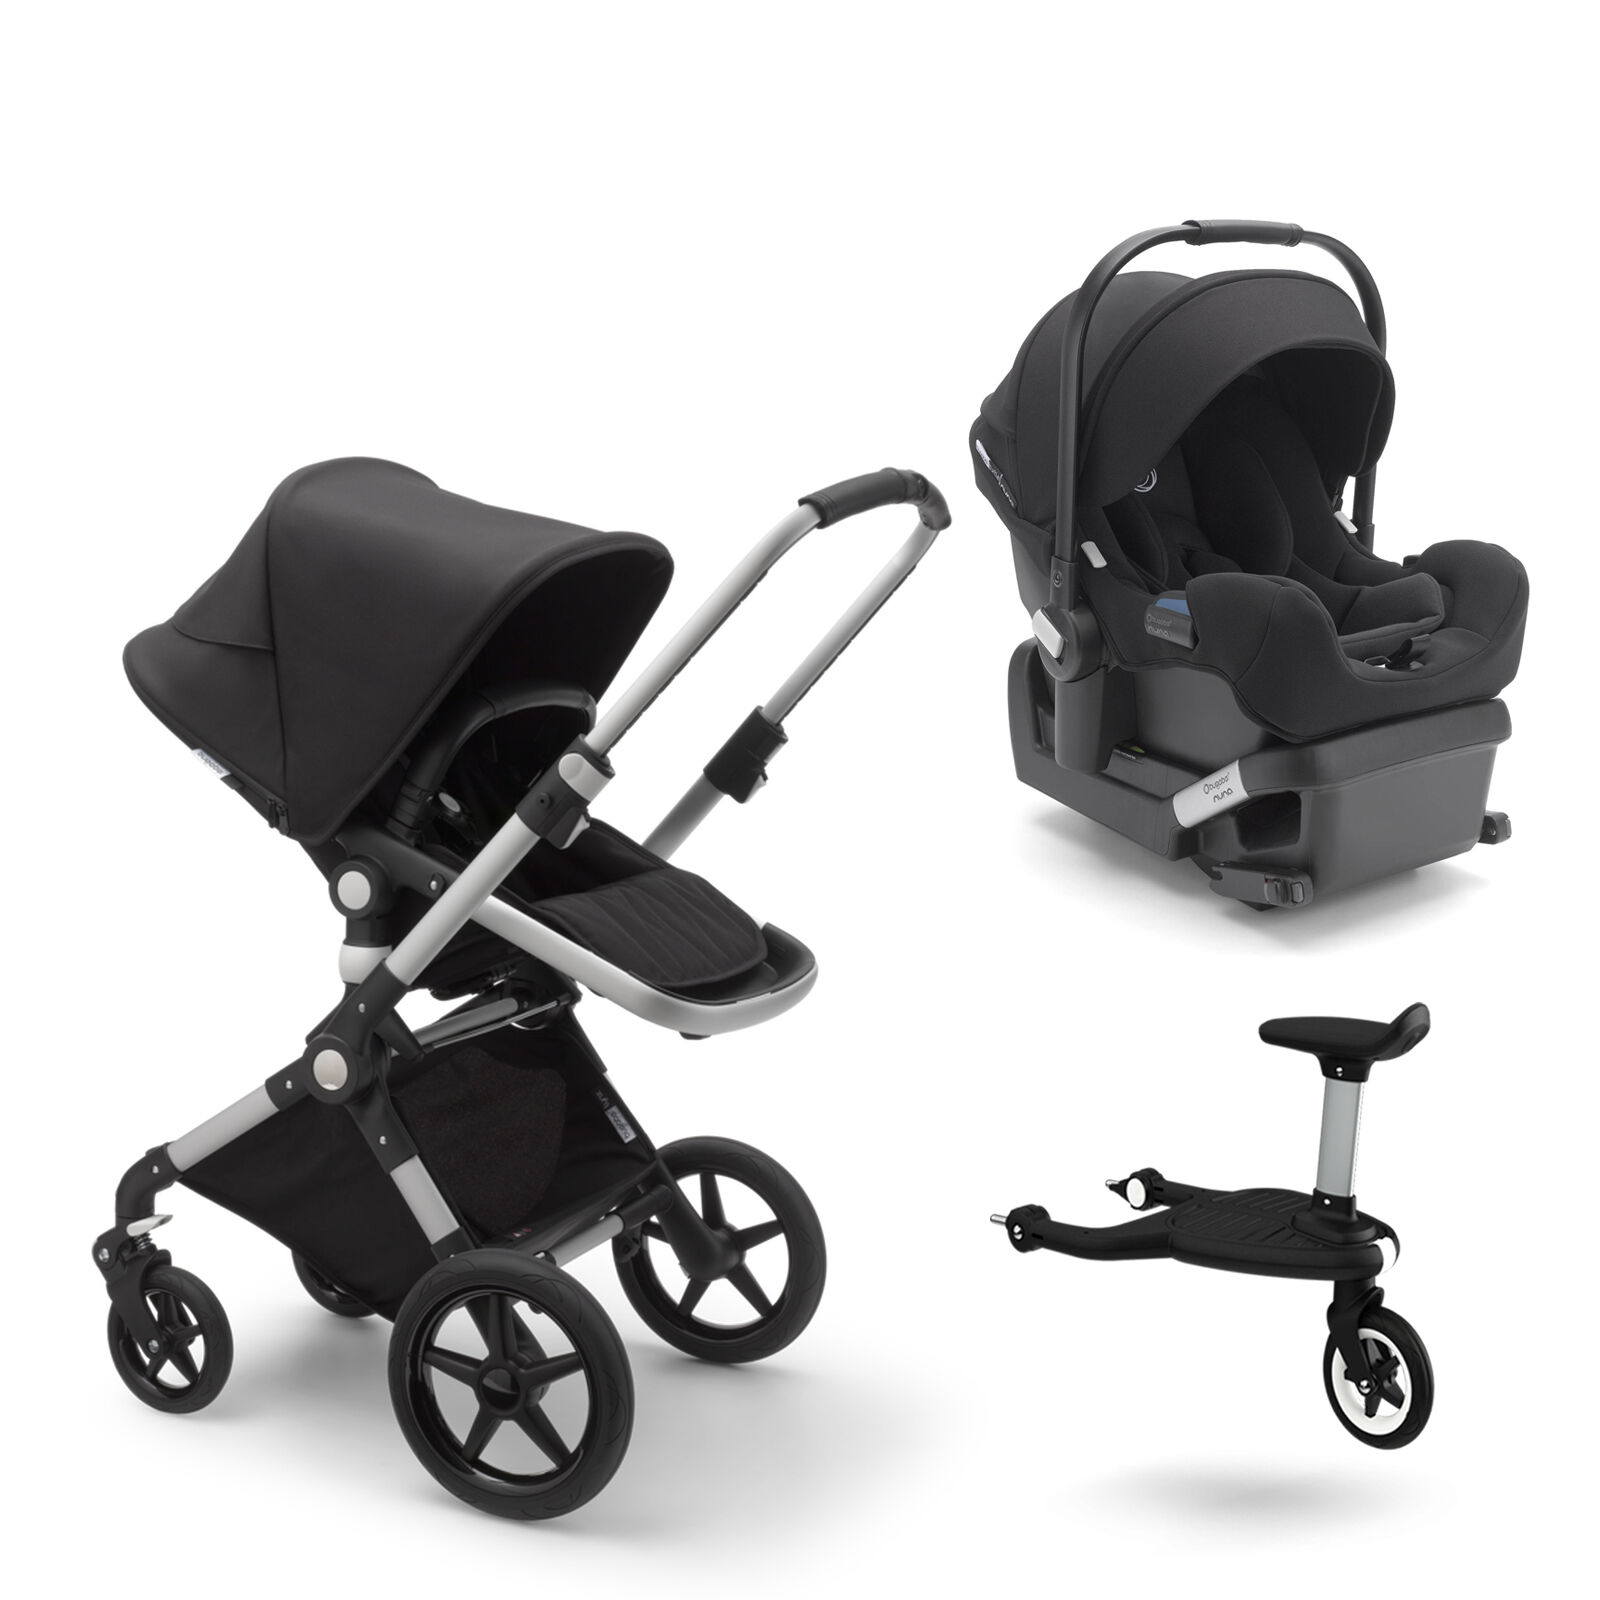 Bugaboo Lynx, Turtle by Nuna and Wheeled board